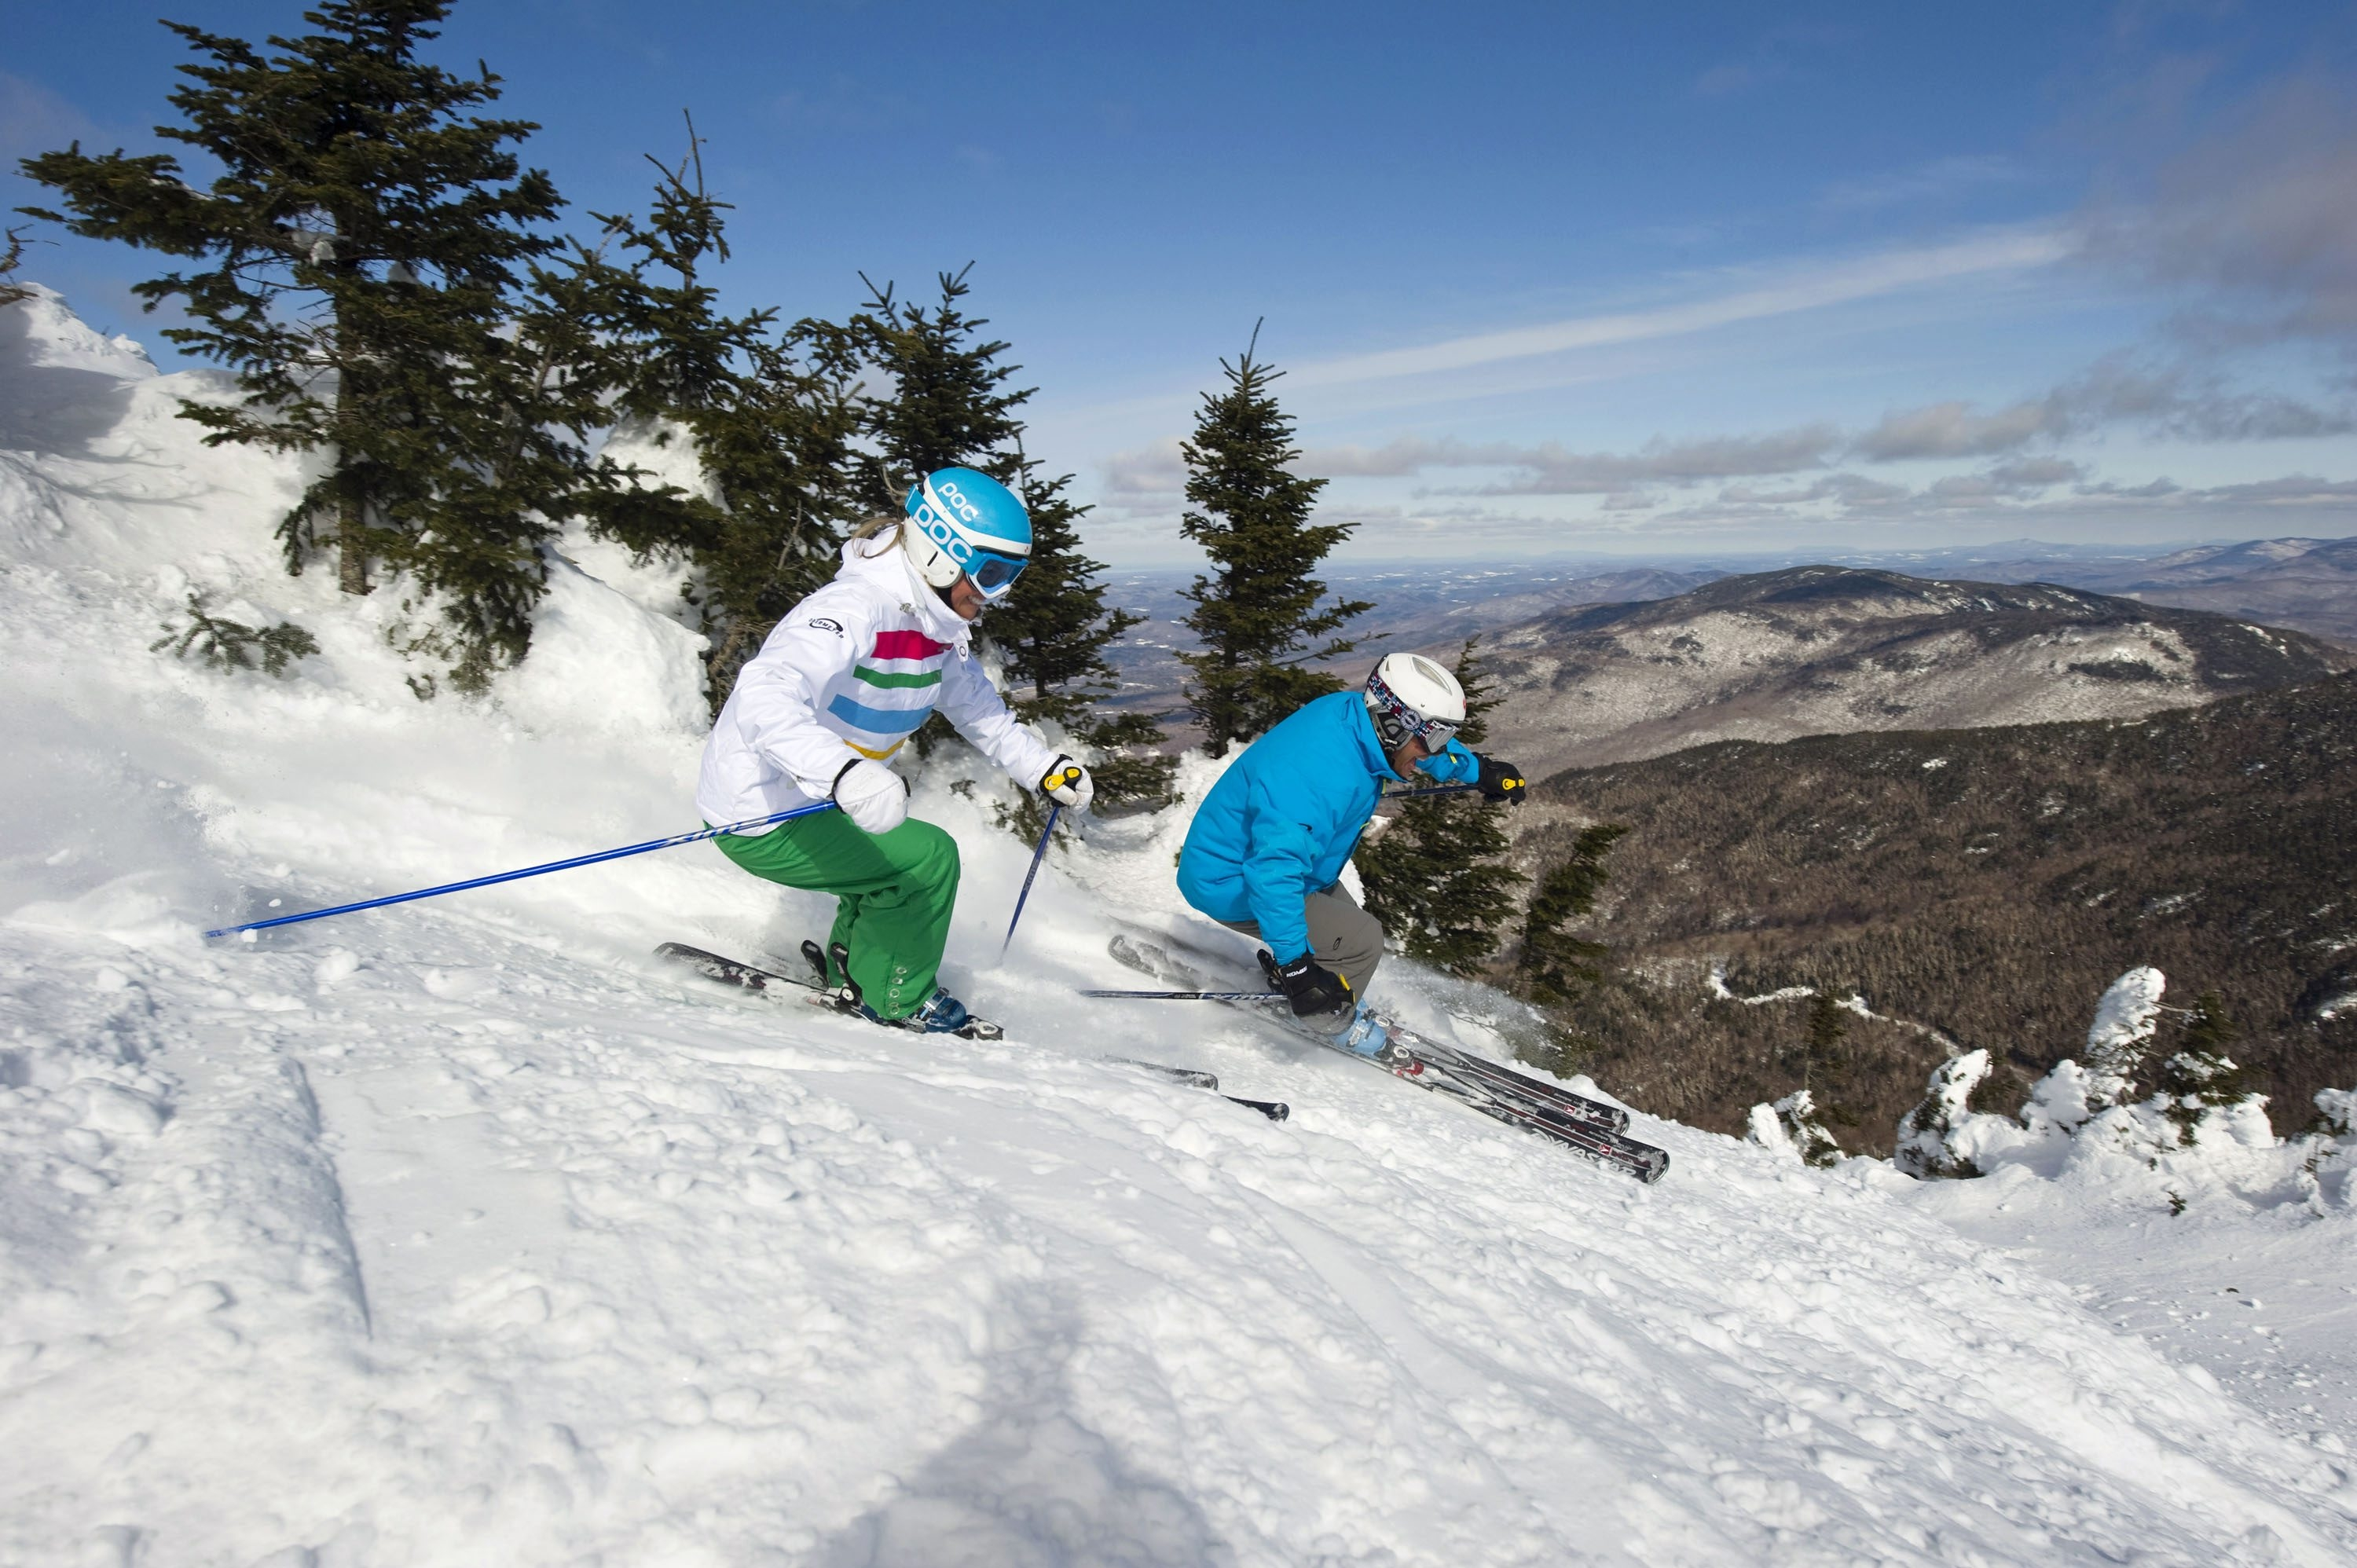 The most talked about injury in skiing is the torn anterior cruciate ligament in the knee. Experts say the best way to avoid injuries is proper conditioning.